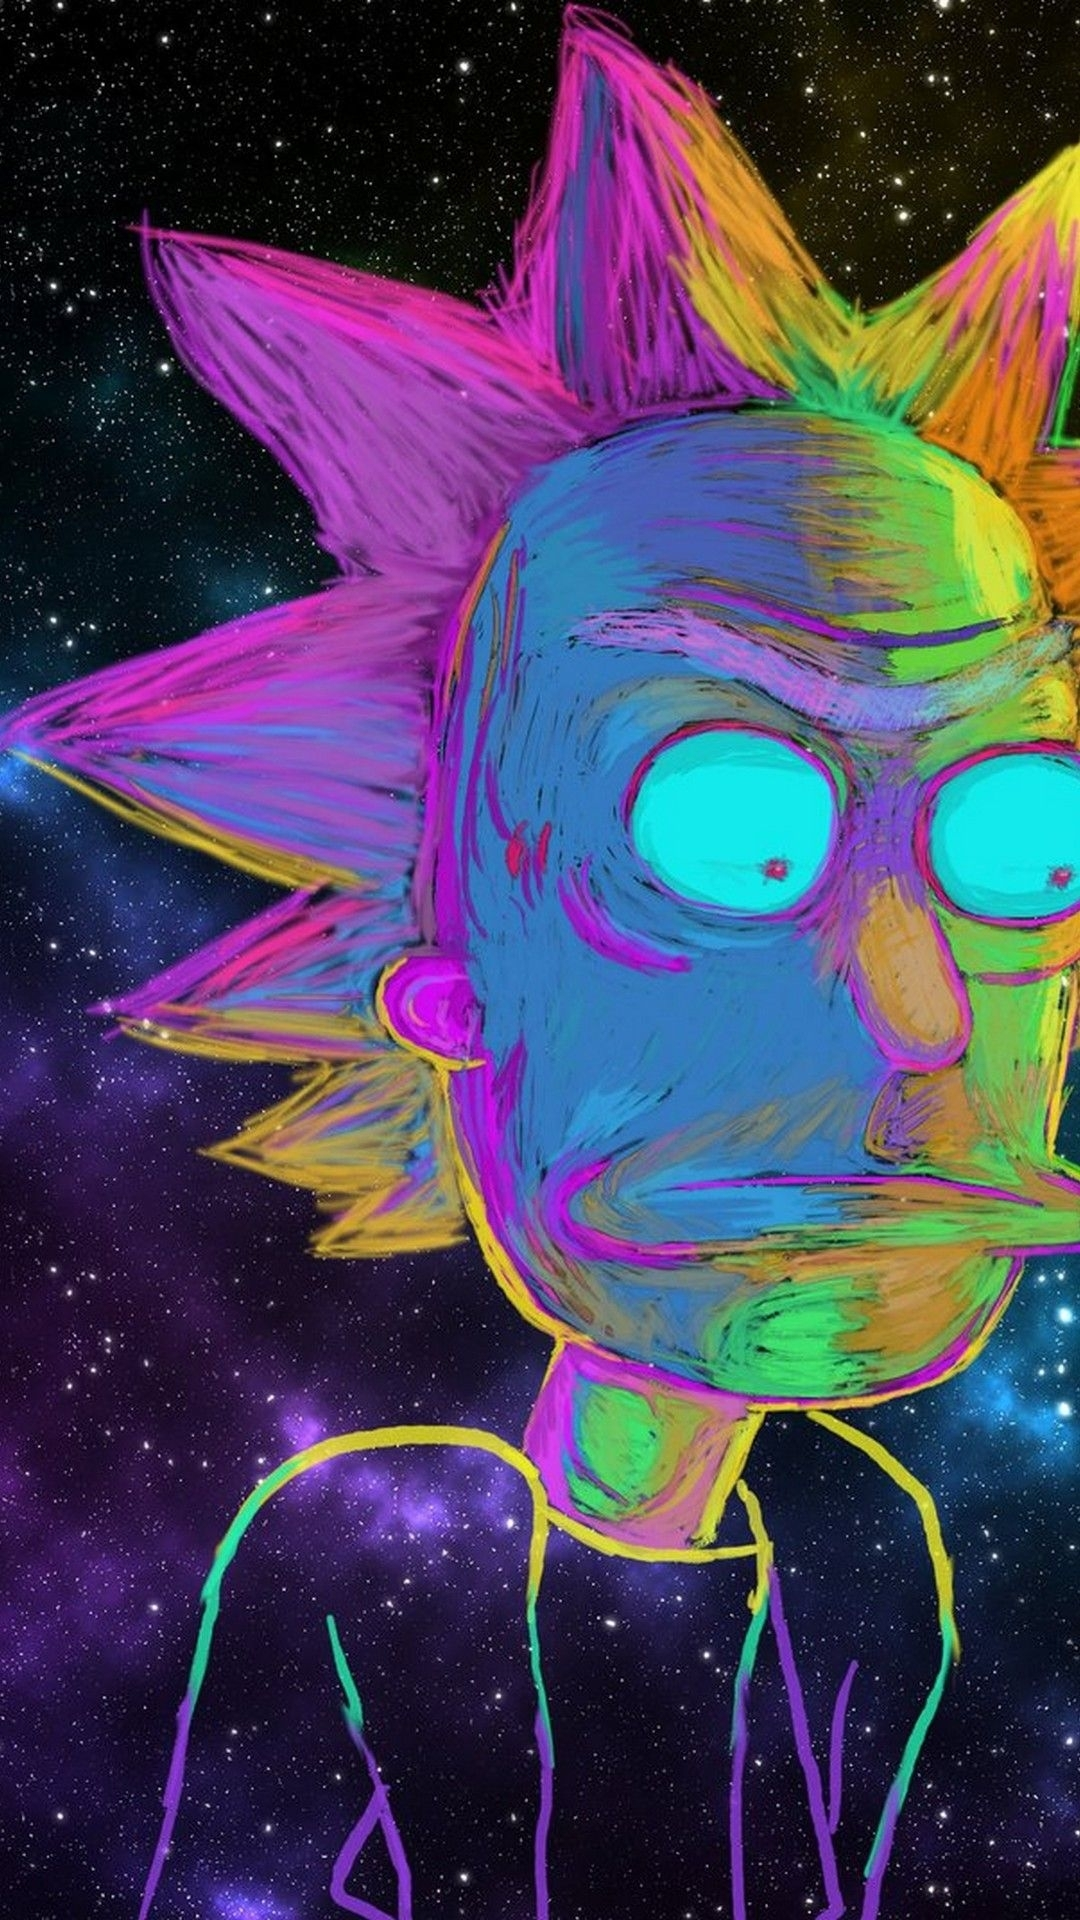 wallpaper rick and morty iphone hd - 2018 iphone wallpapers